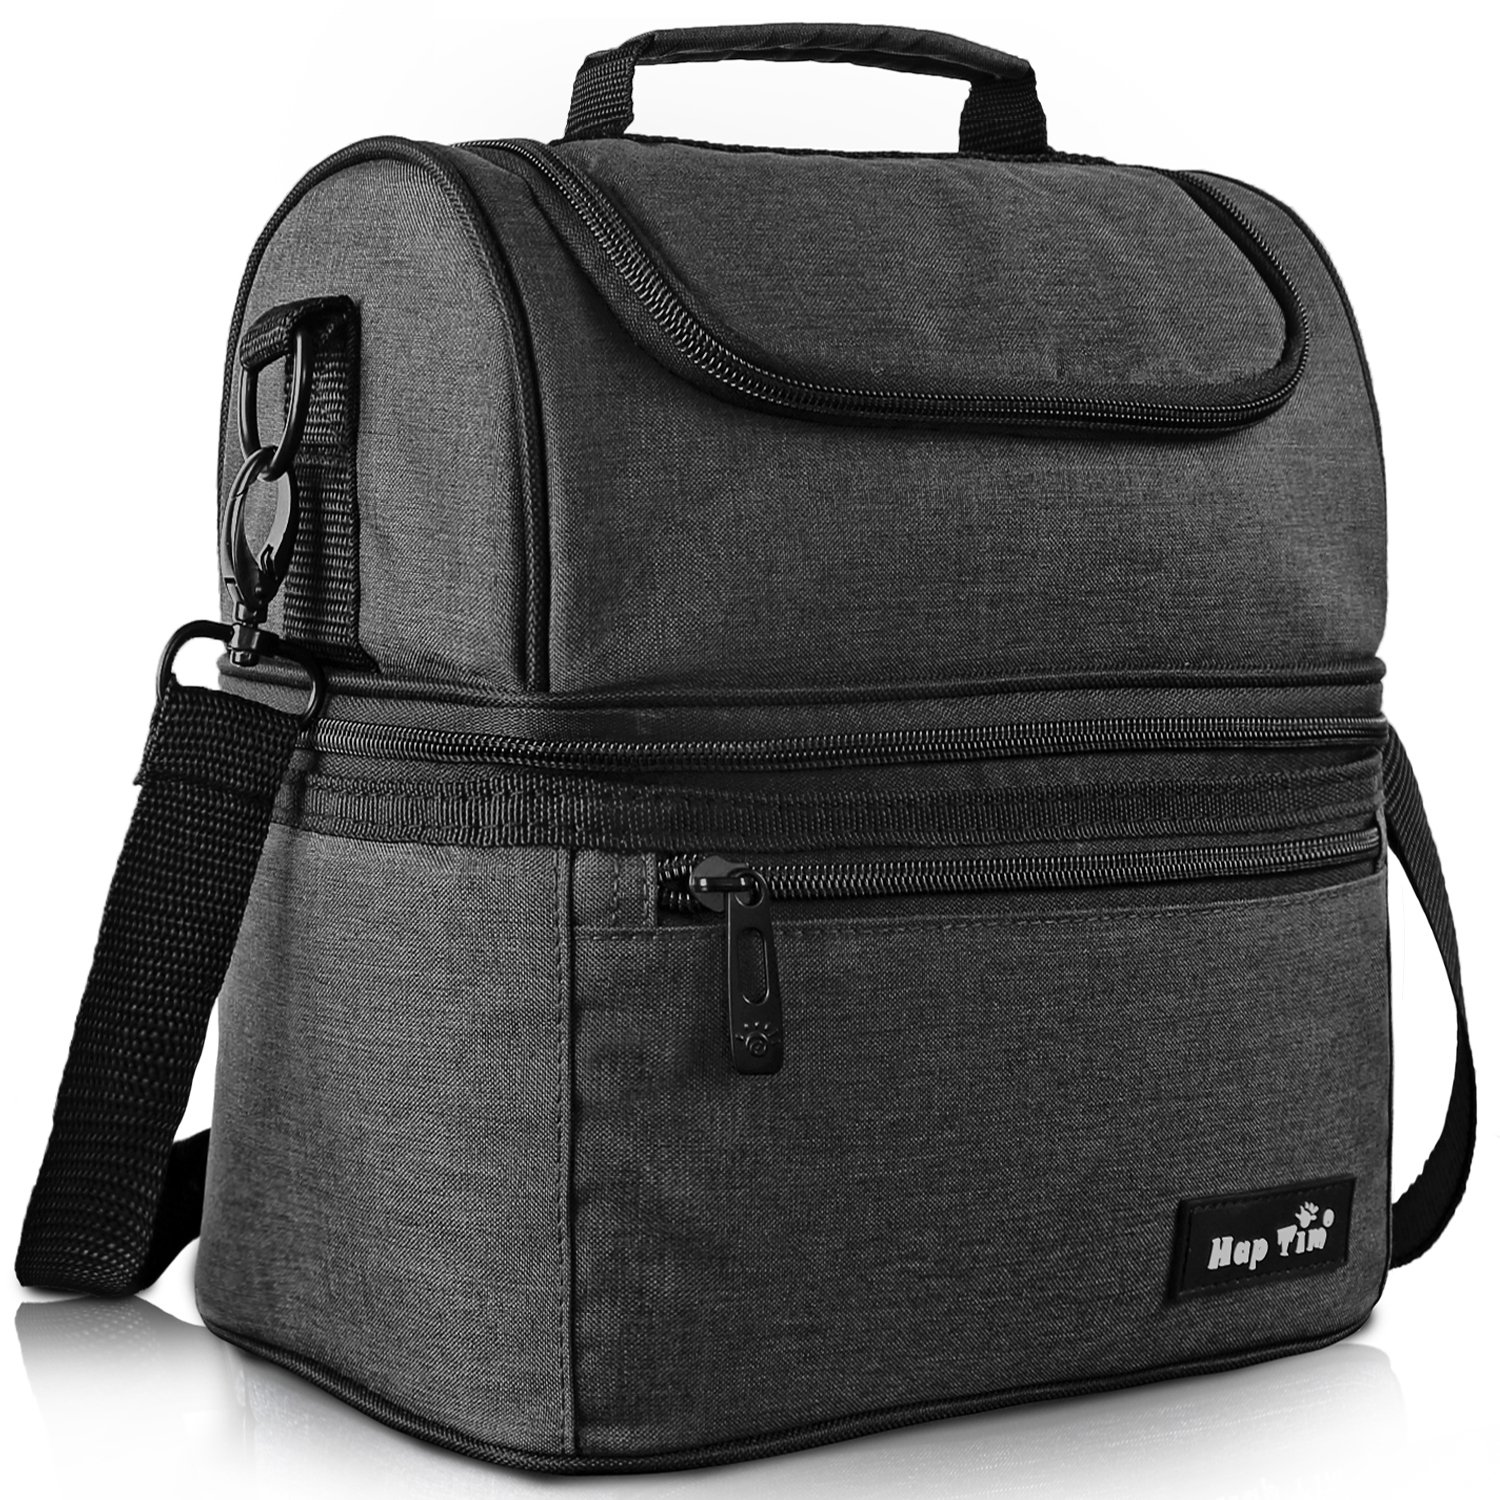 Hap Tim Lunch Box Insulated Lunch Bag Large Cooler Tote Bag for Adult,Men,Women,Kids, Double Deck Cooler for Office/School/Picnic/Travel/Camping (16040-DG)